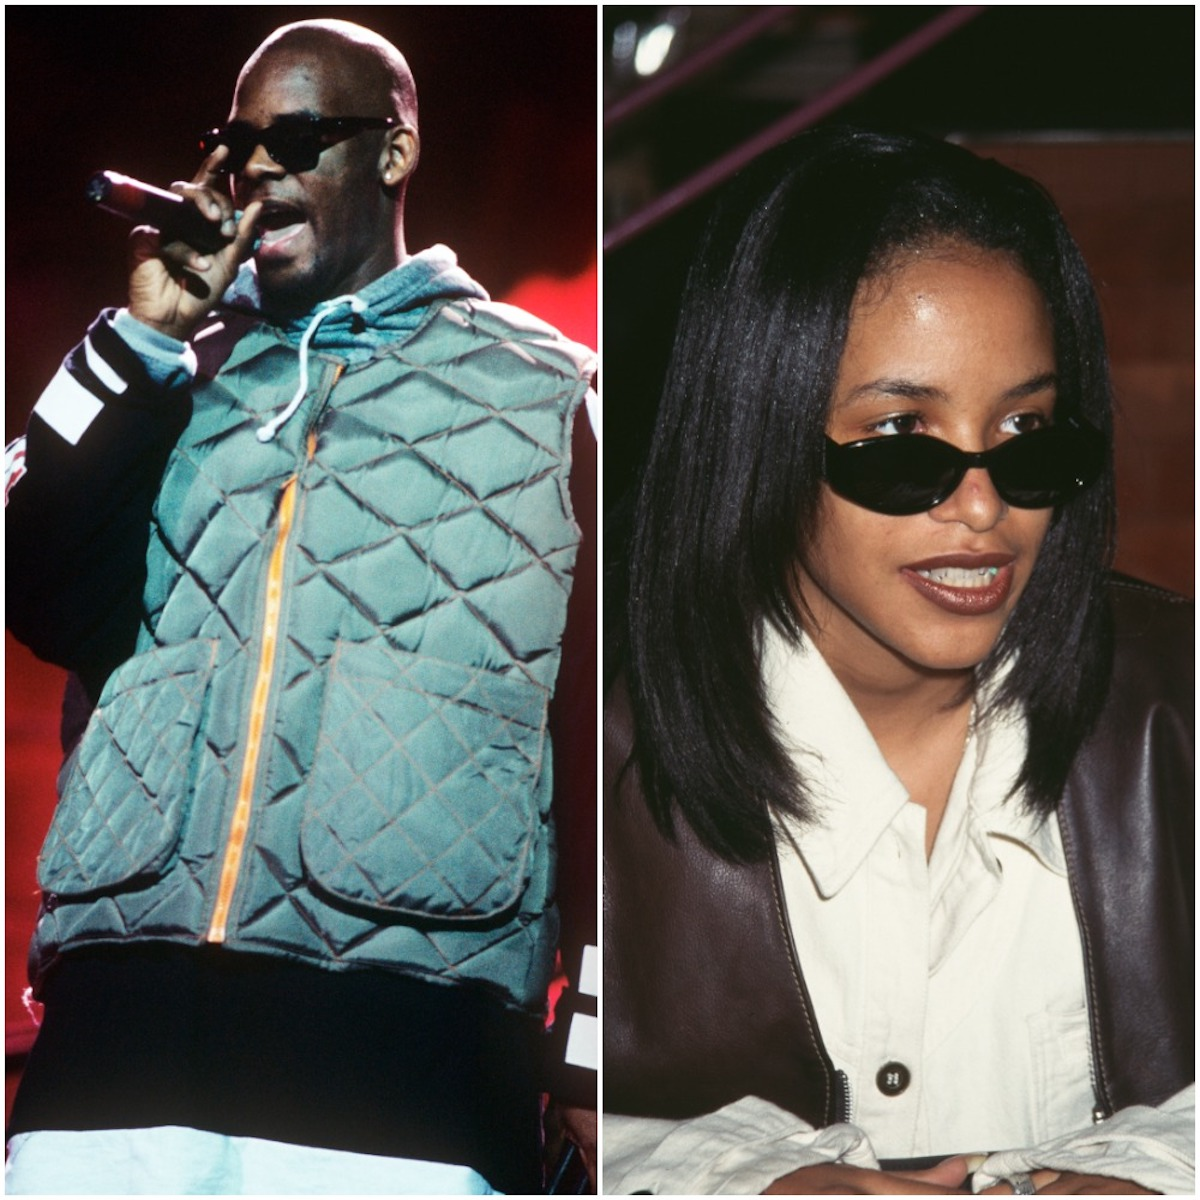 R. Kelly and Aalyah